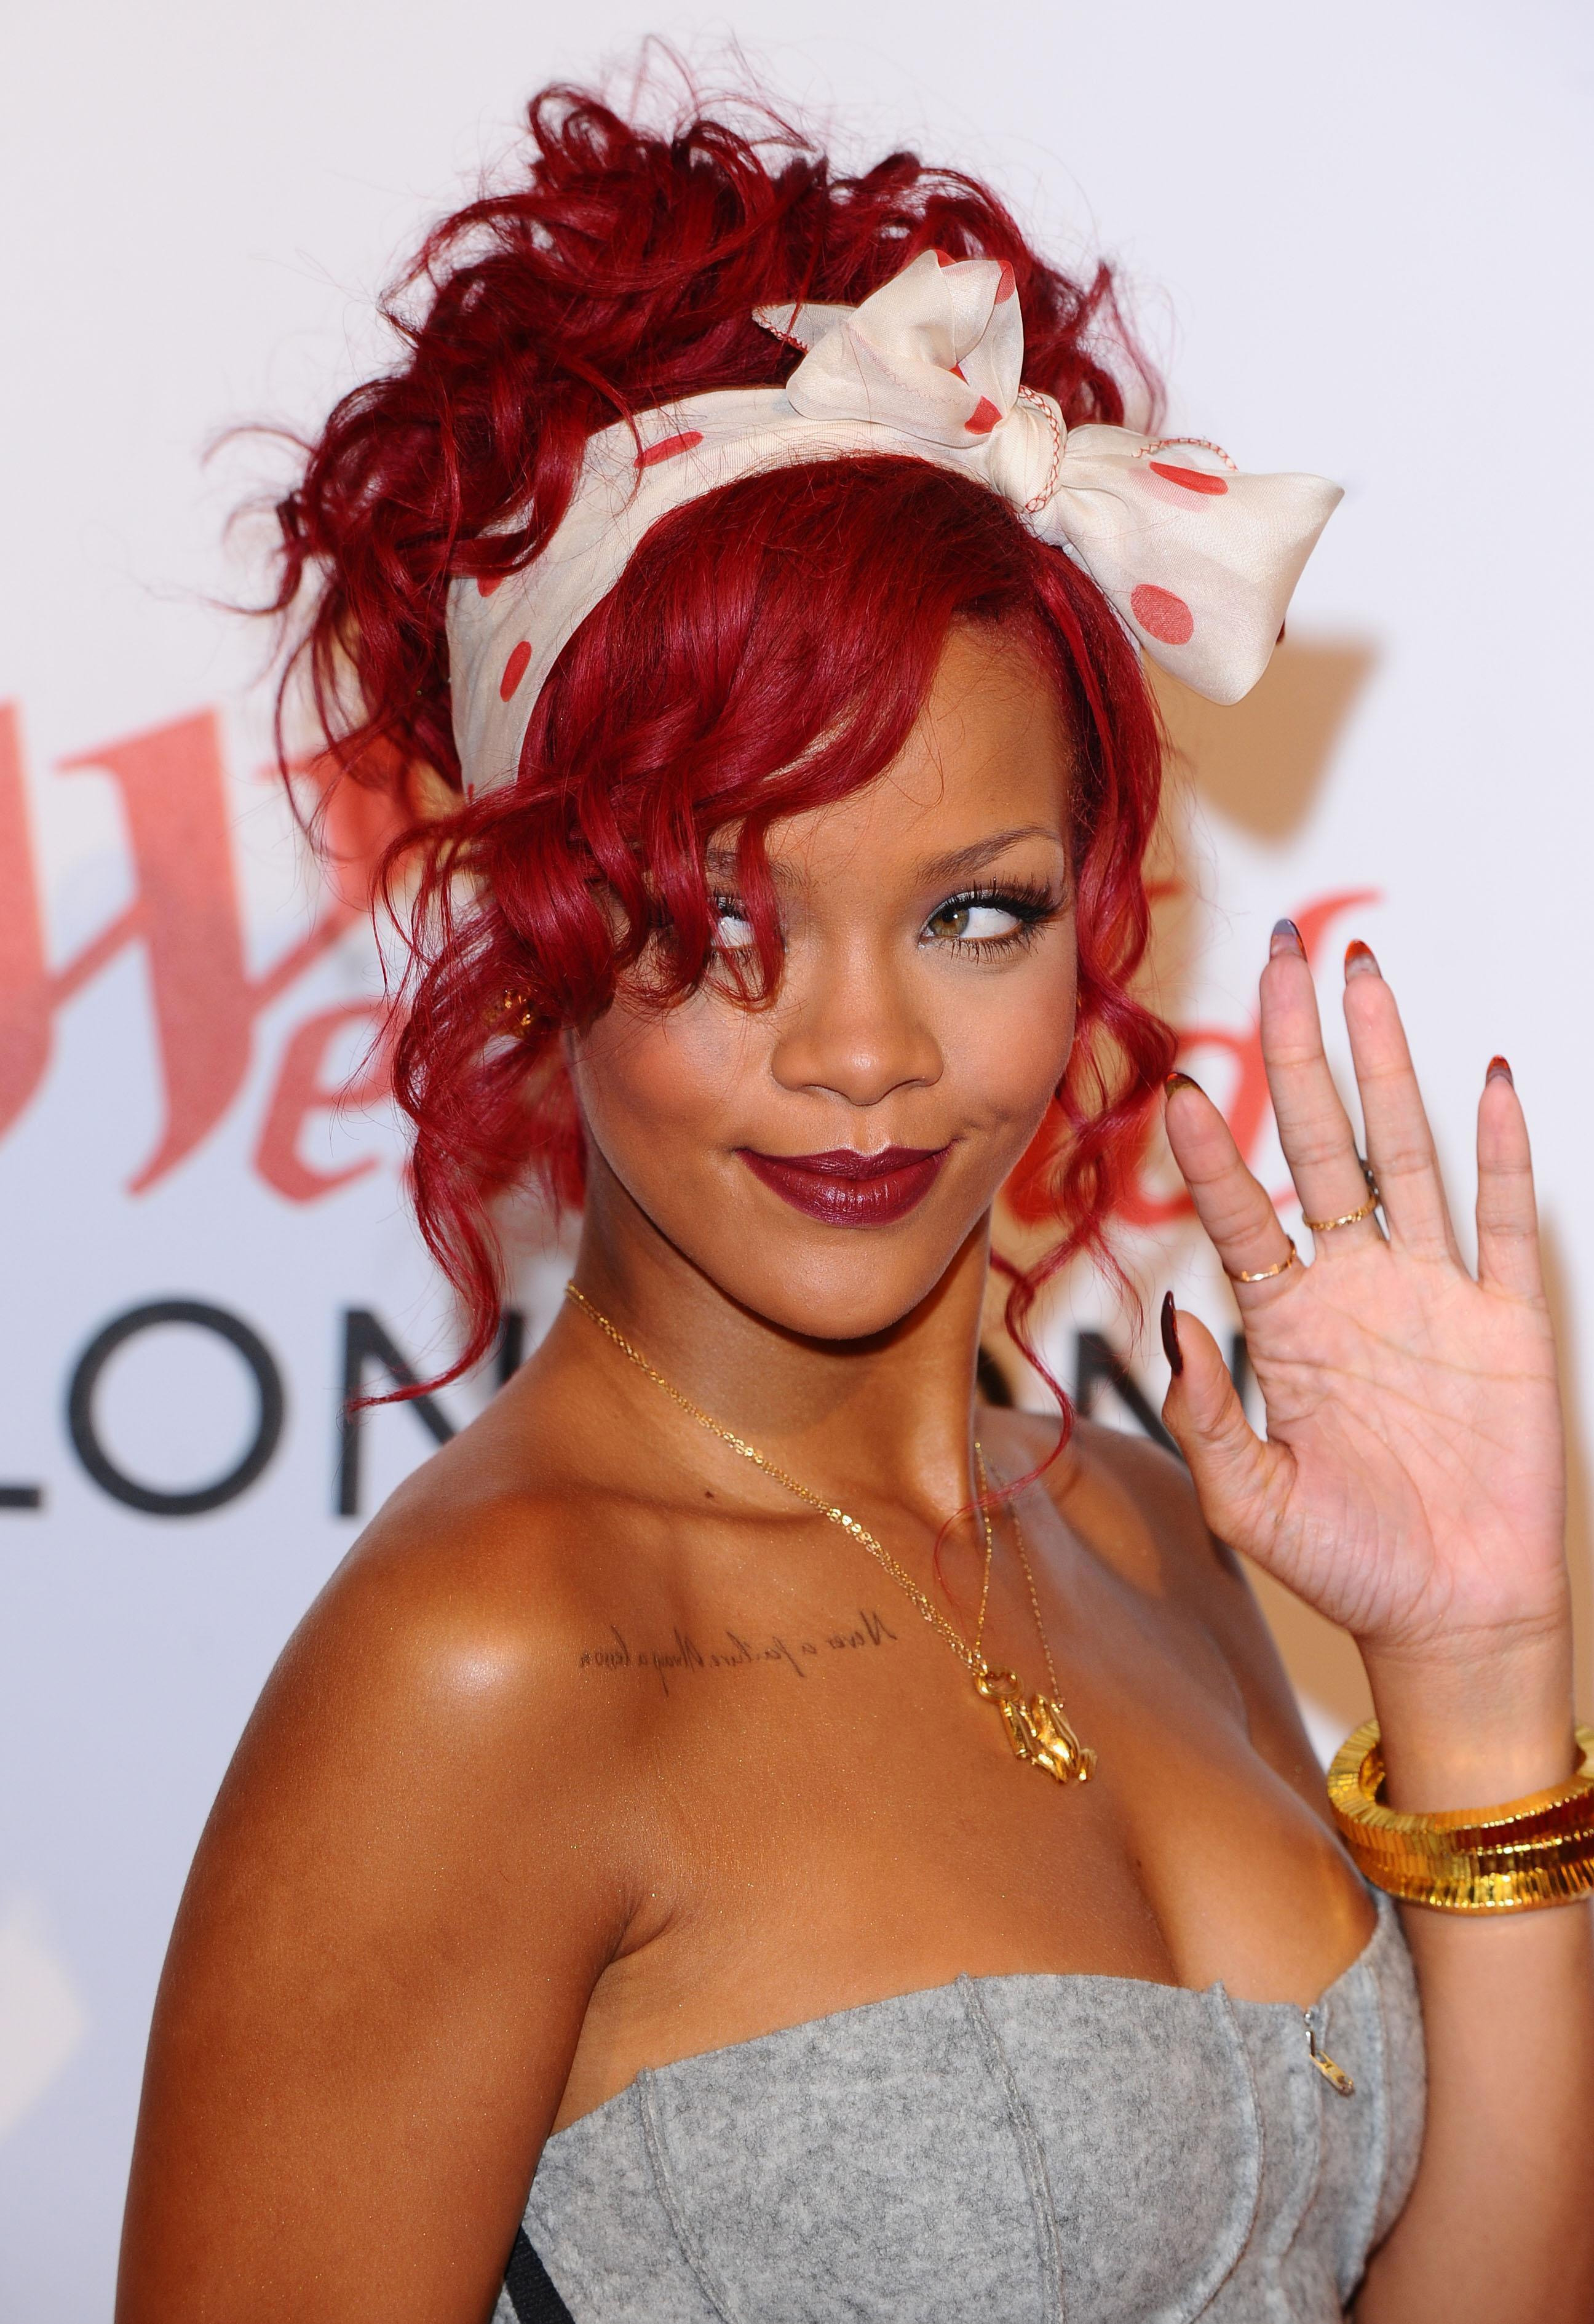 Rihanna hangs onto number one spot in UK singles chart